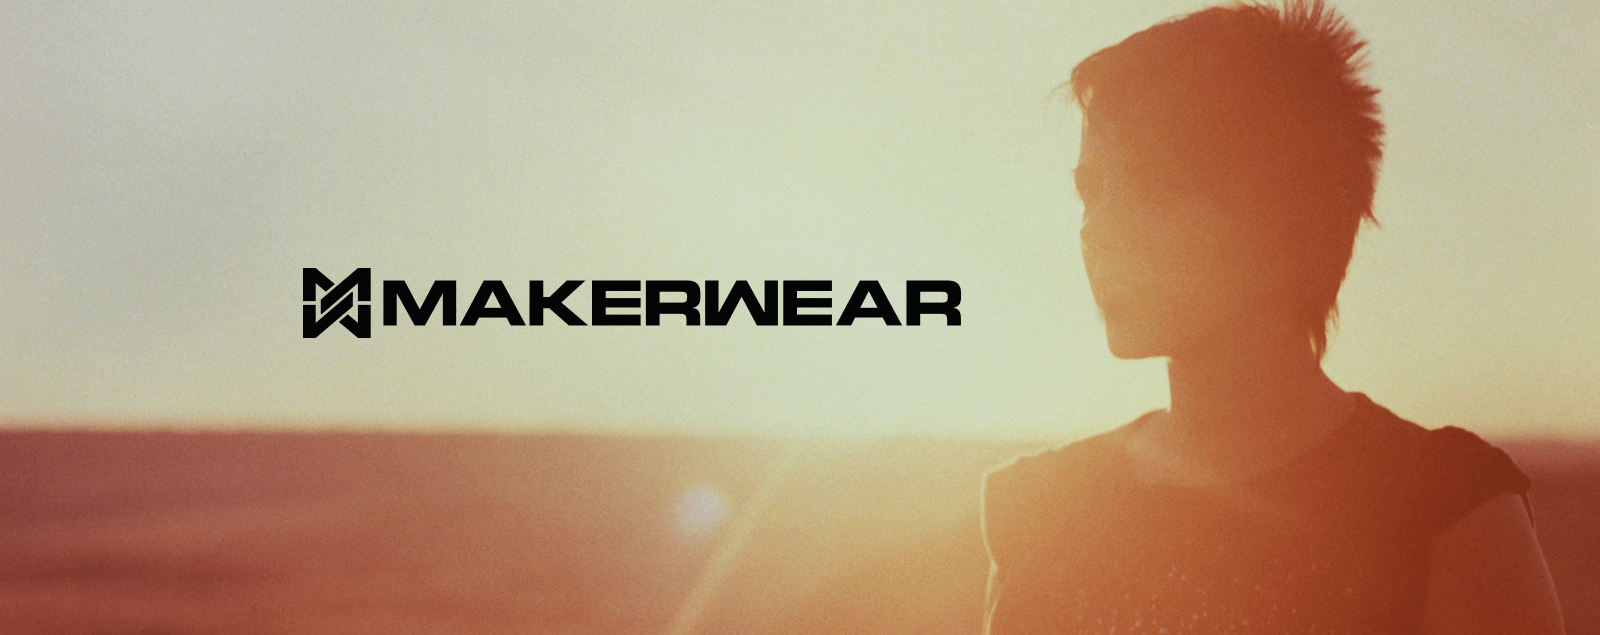 makerwear-hero